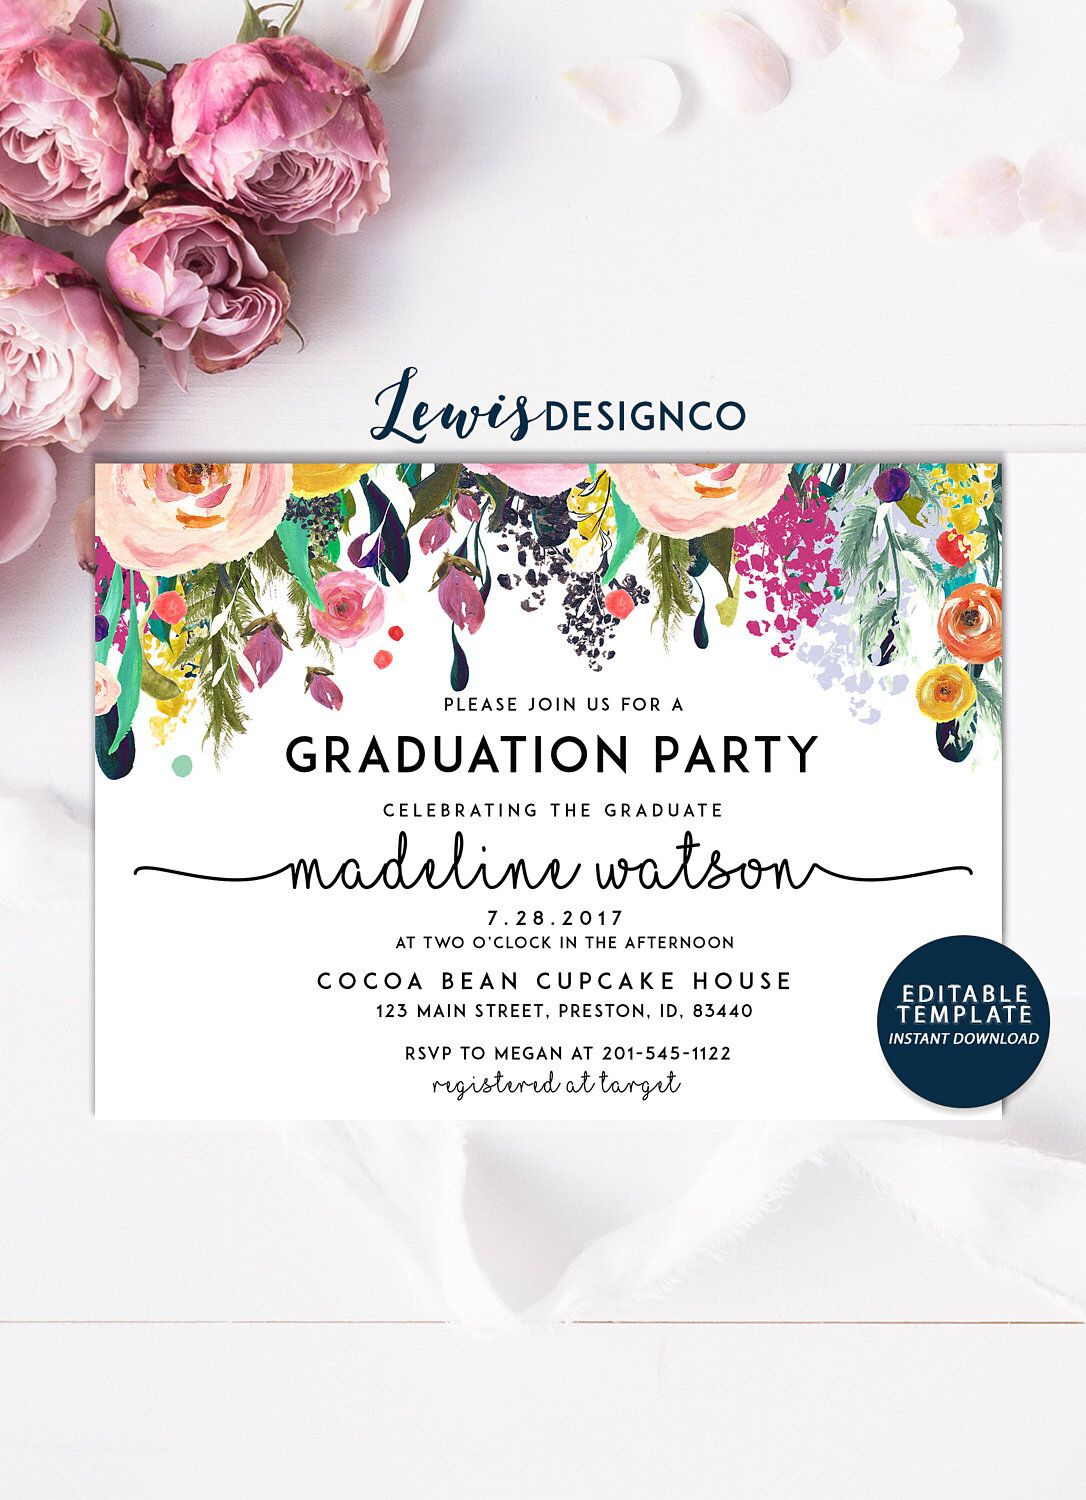 Graduation Party Invitation High School Graduation Invite Open House Class of 2019 Floral